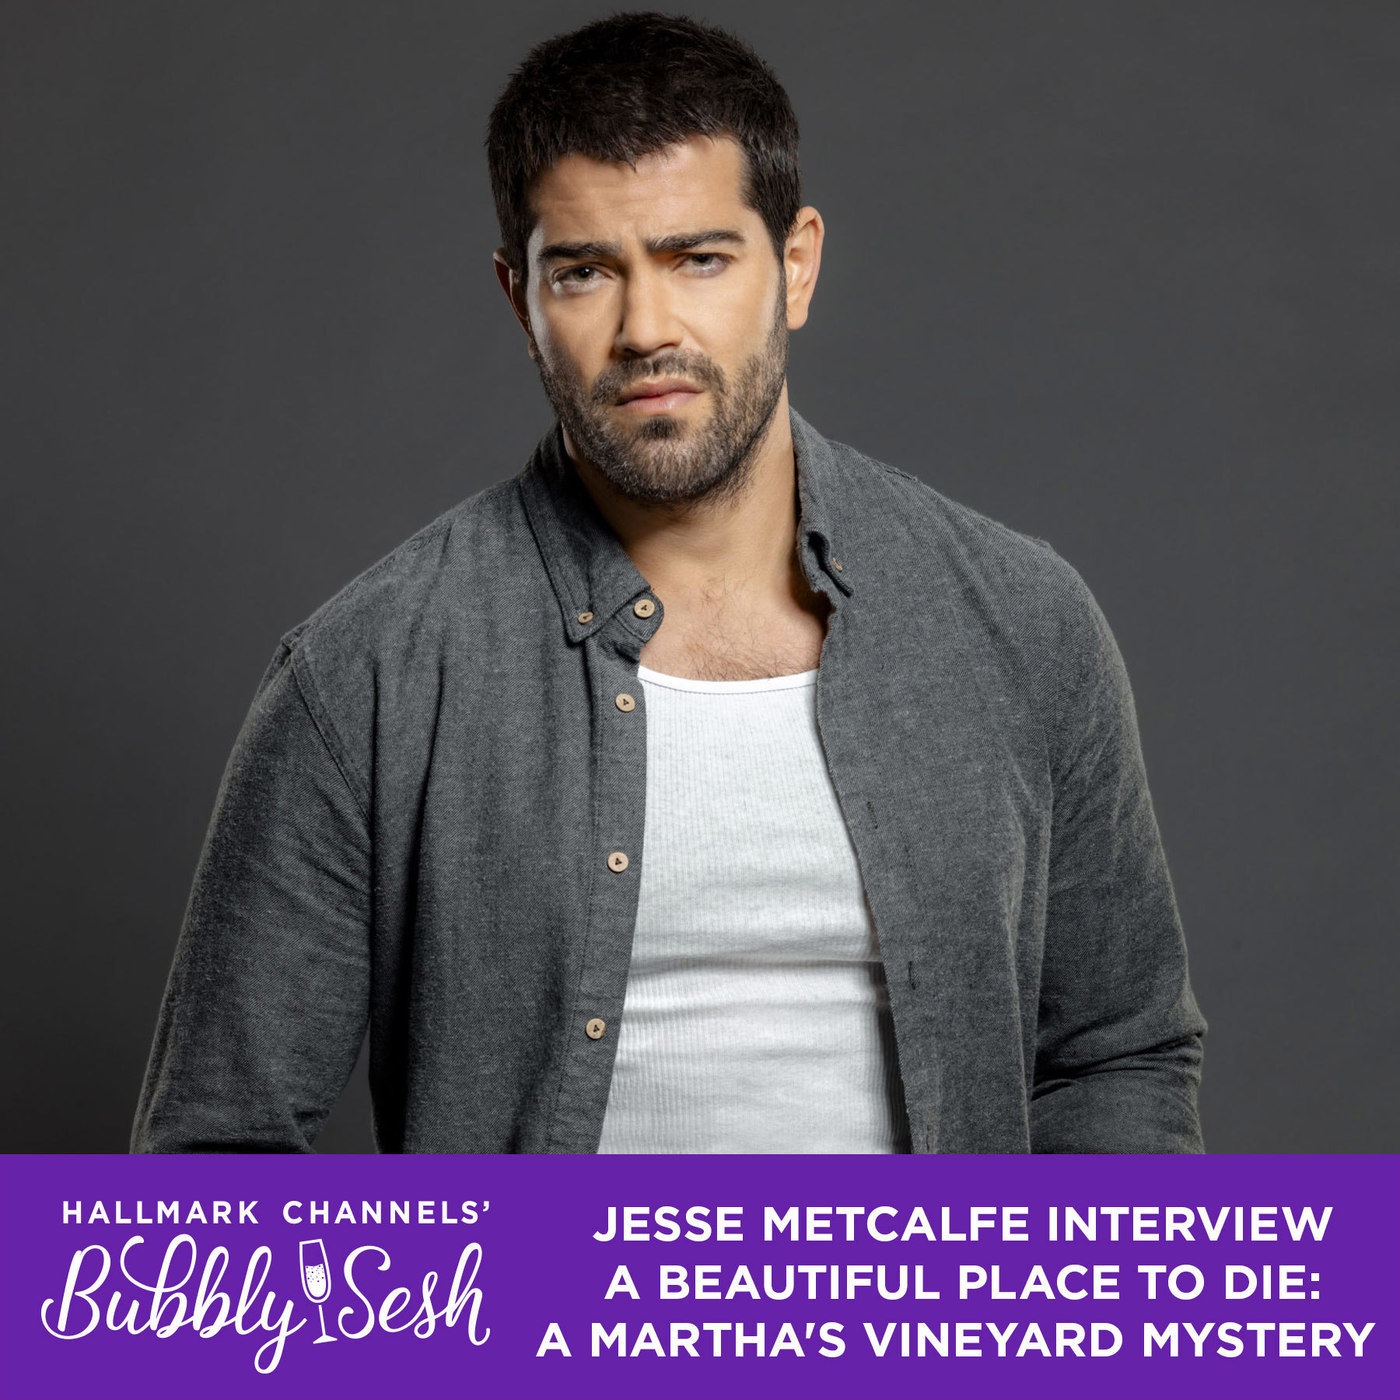 Jesse Metcalfe Interview, A Beautiful Place to Die: A Martha's Vineyard Mystery